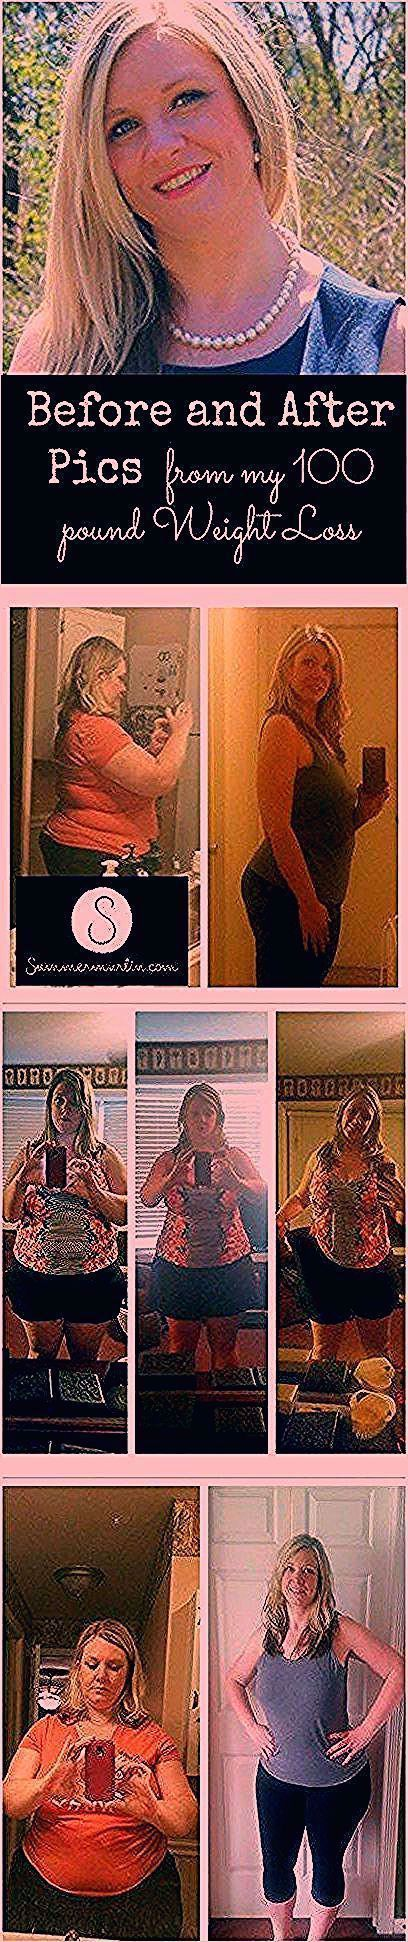 How I Lose 60 Pounds on the Keto Diet: Before and After Keto Weight LossHow I Lose 60 Pounds on the Keto Diet: Before and After Keto Weight LossYouthful Paleo Diet Before and After #paleogirl #PaleoDinner ...- Youthful Paleo ...Adolescent paleo diet before and after #paleogirl #PaleoDinner ...- Adolescent paleo diet before and after #paleogirl # PaleoDinnerWhole30 How I lost 60 pounds before and after the keto diet How I lost 60 pounds before a... #after #before #ideas #motivation #pictures